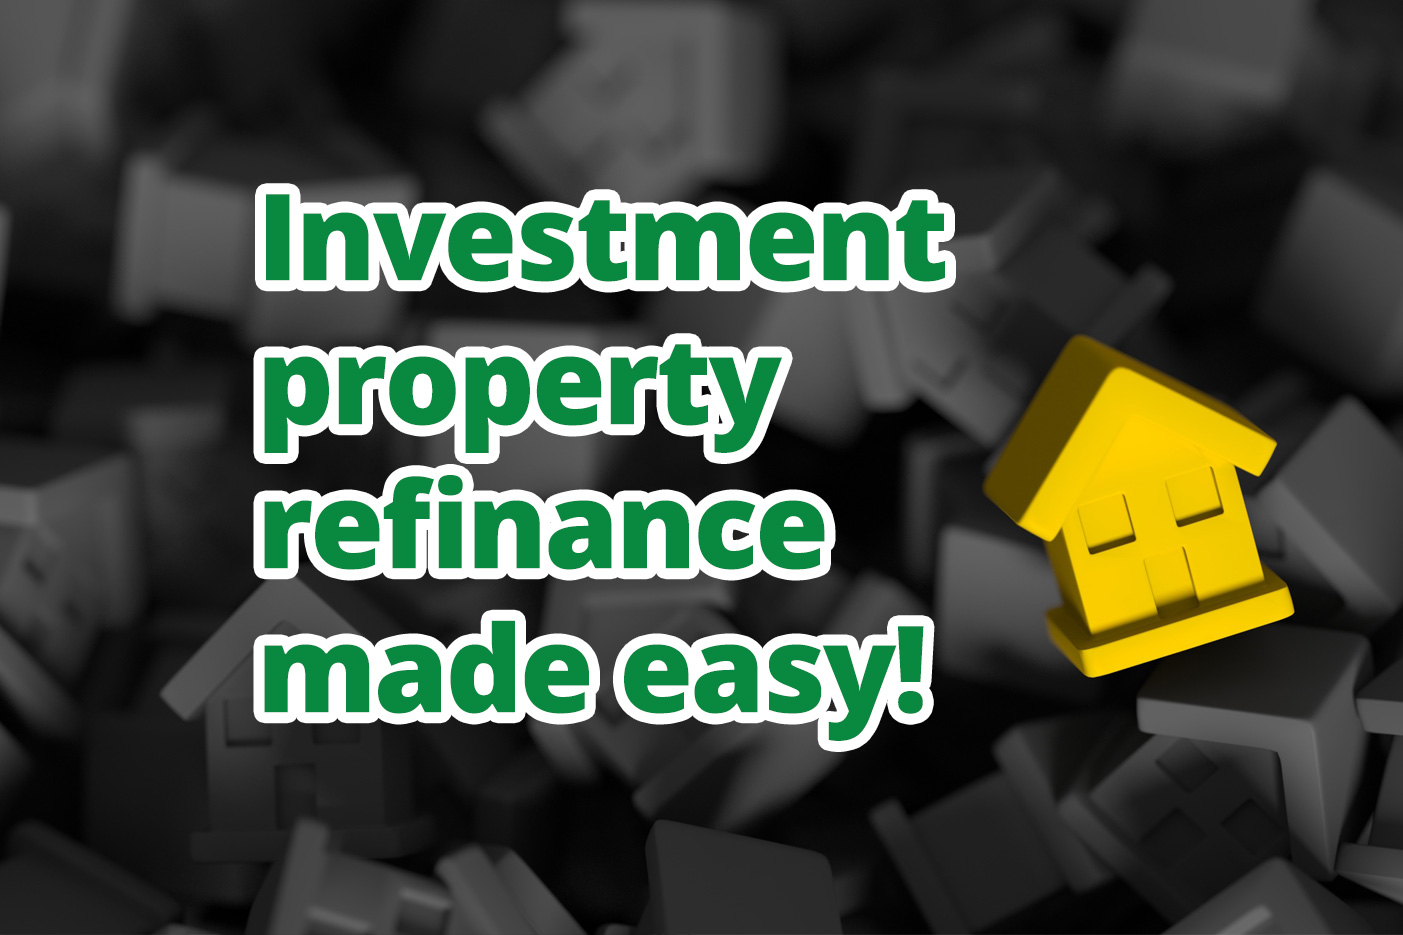 Investment property refinance made easy!